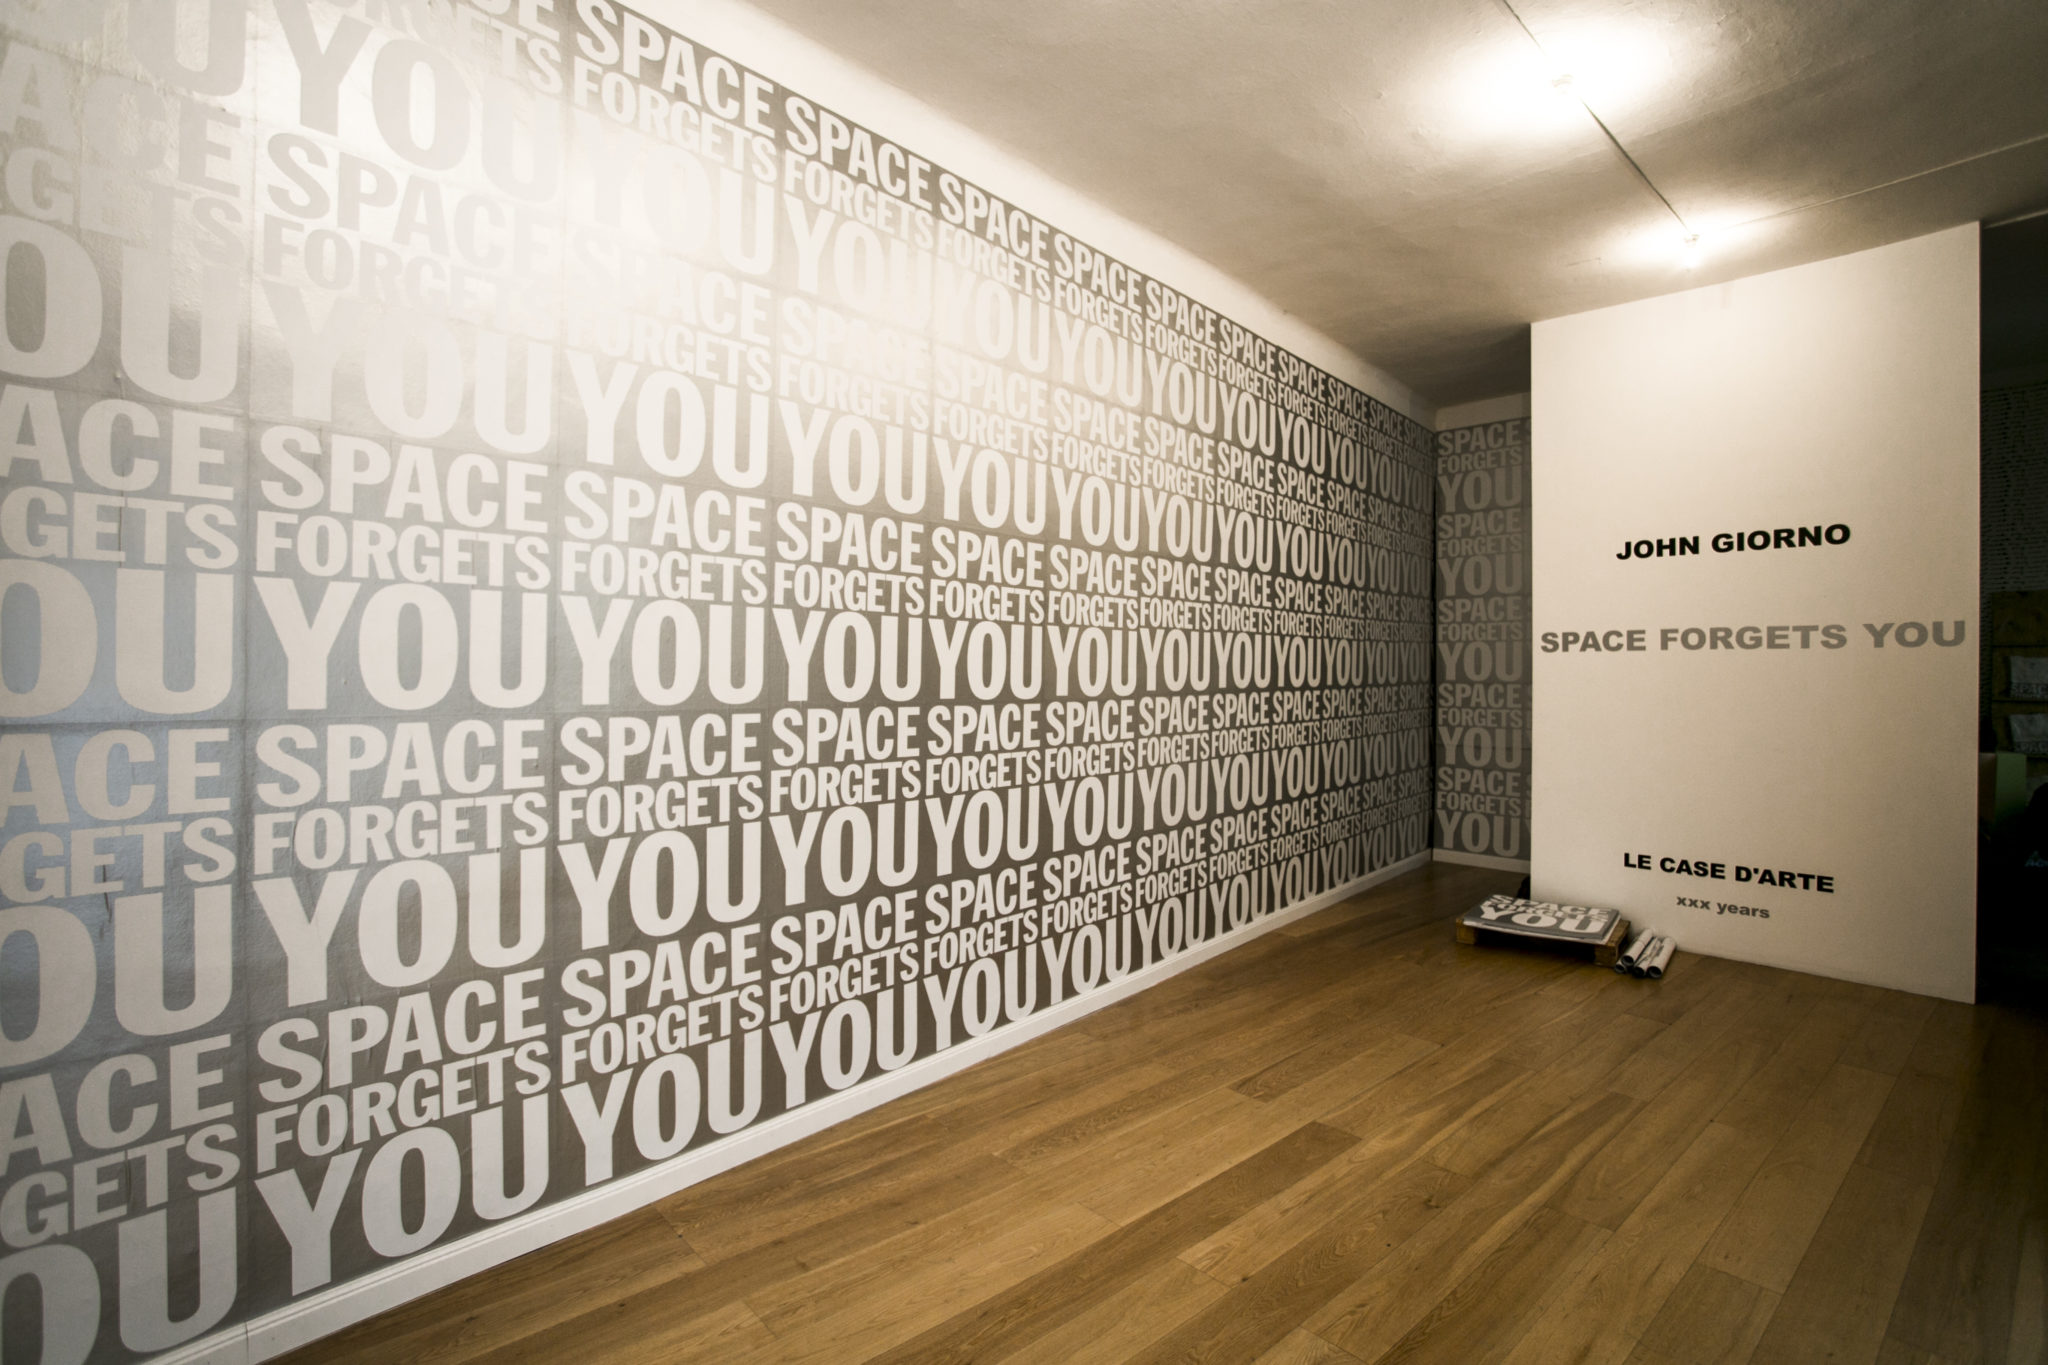 Space Forgets You. John Giorno a Milano